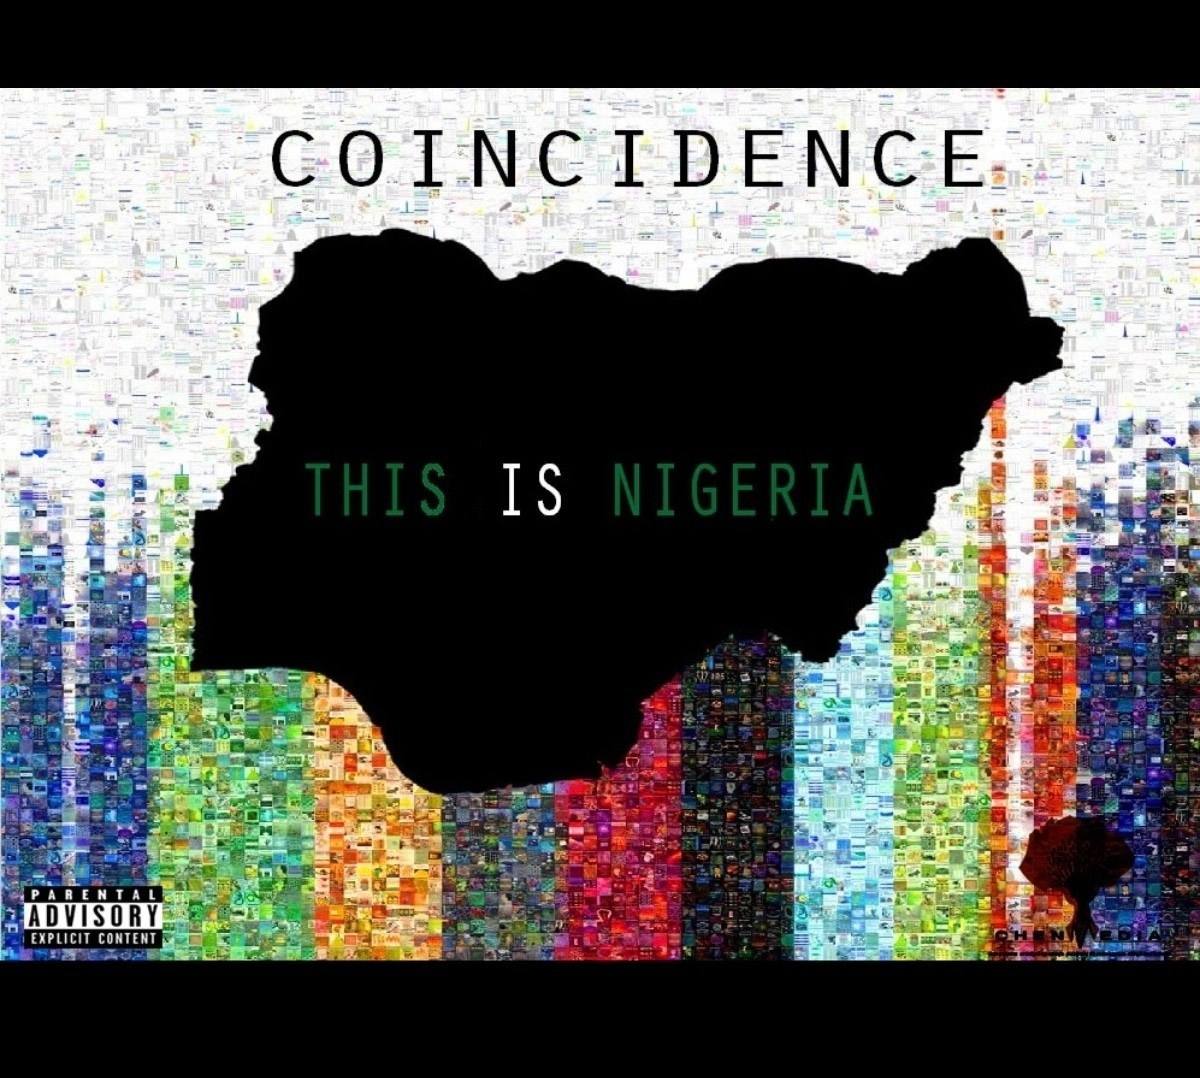 https://i1.wp.com/www.oneraceconcepts.com/images/COINCIDENCE-THIS-IS-NIGERIA-ARTWORK.jpg